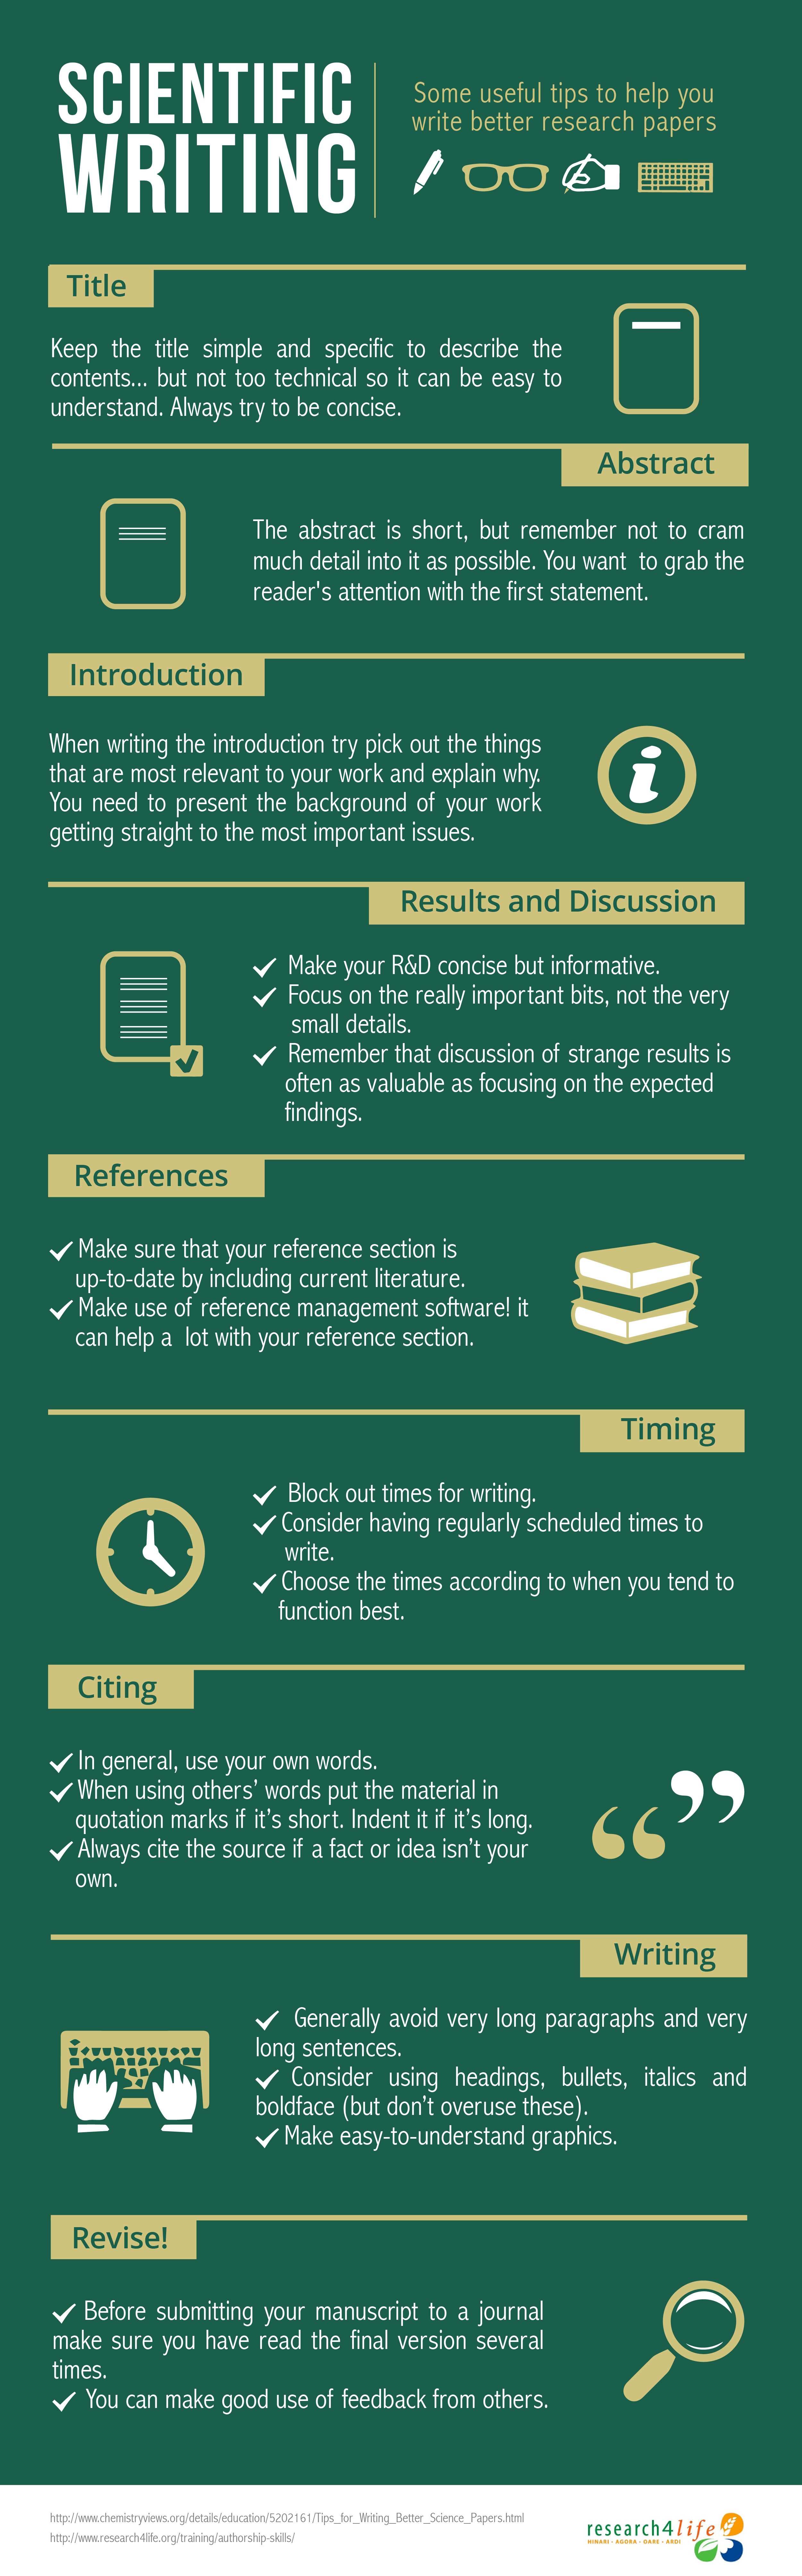 001 Research Paper Tips For Papers Scientific Writing Wondrous Good Effective Full